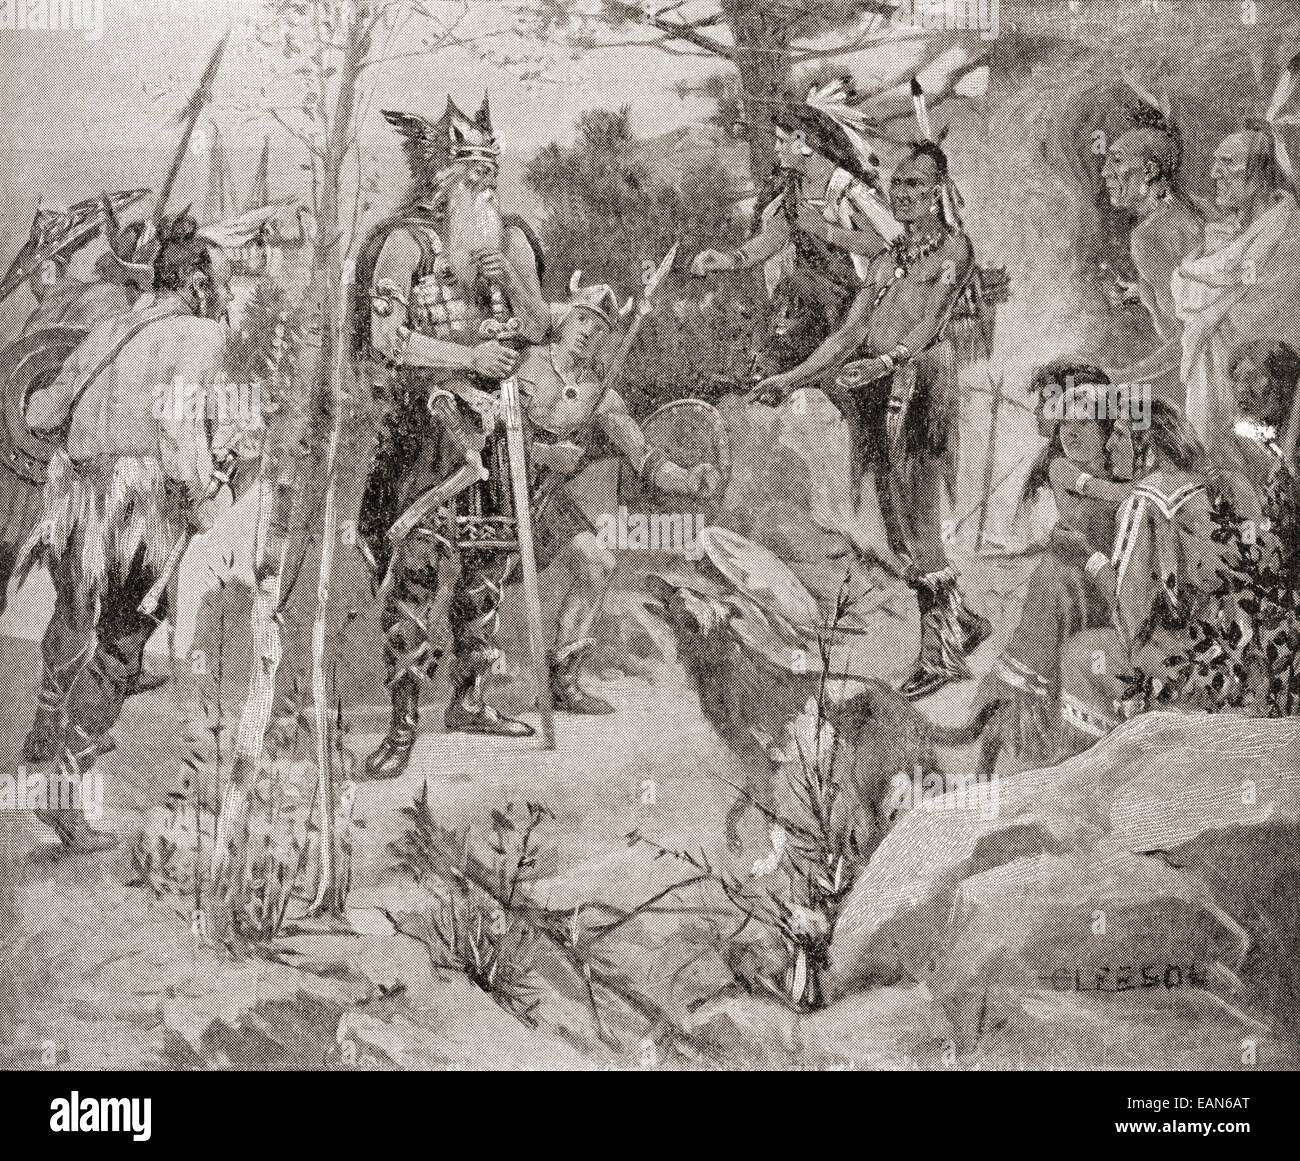 The first meeting between the Norsemen and the natives of North America in the 11th century. - Stock Image